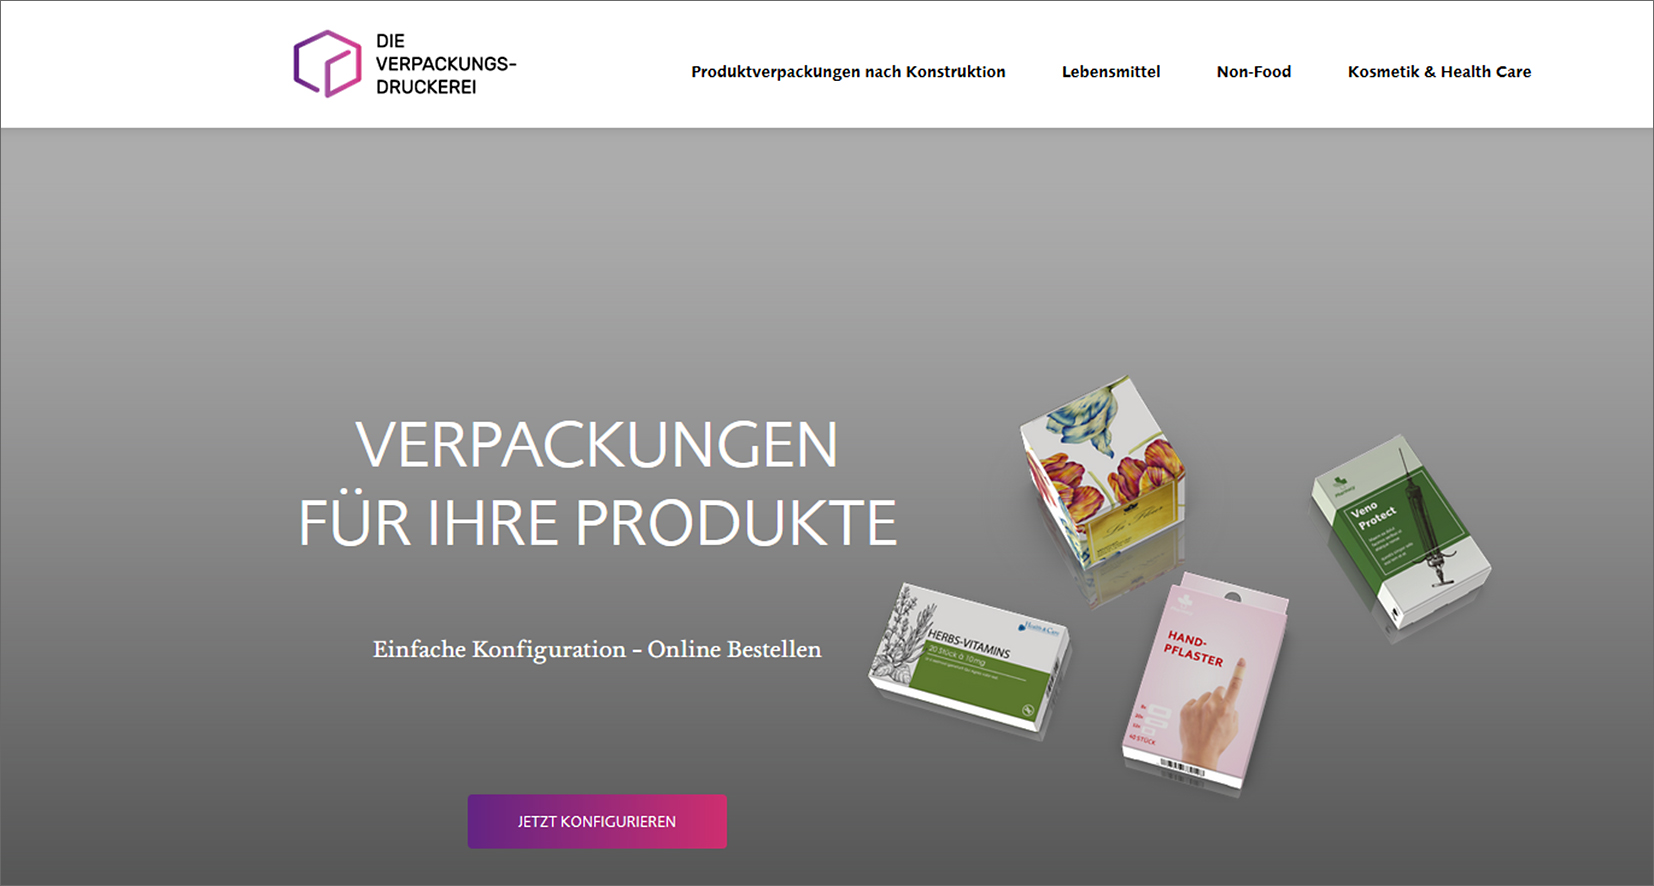 Web-to-packaging: Offsetdruckerei Schwarzach launches three professional stores